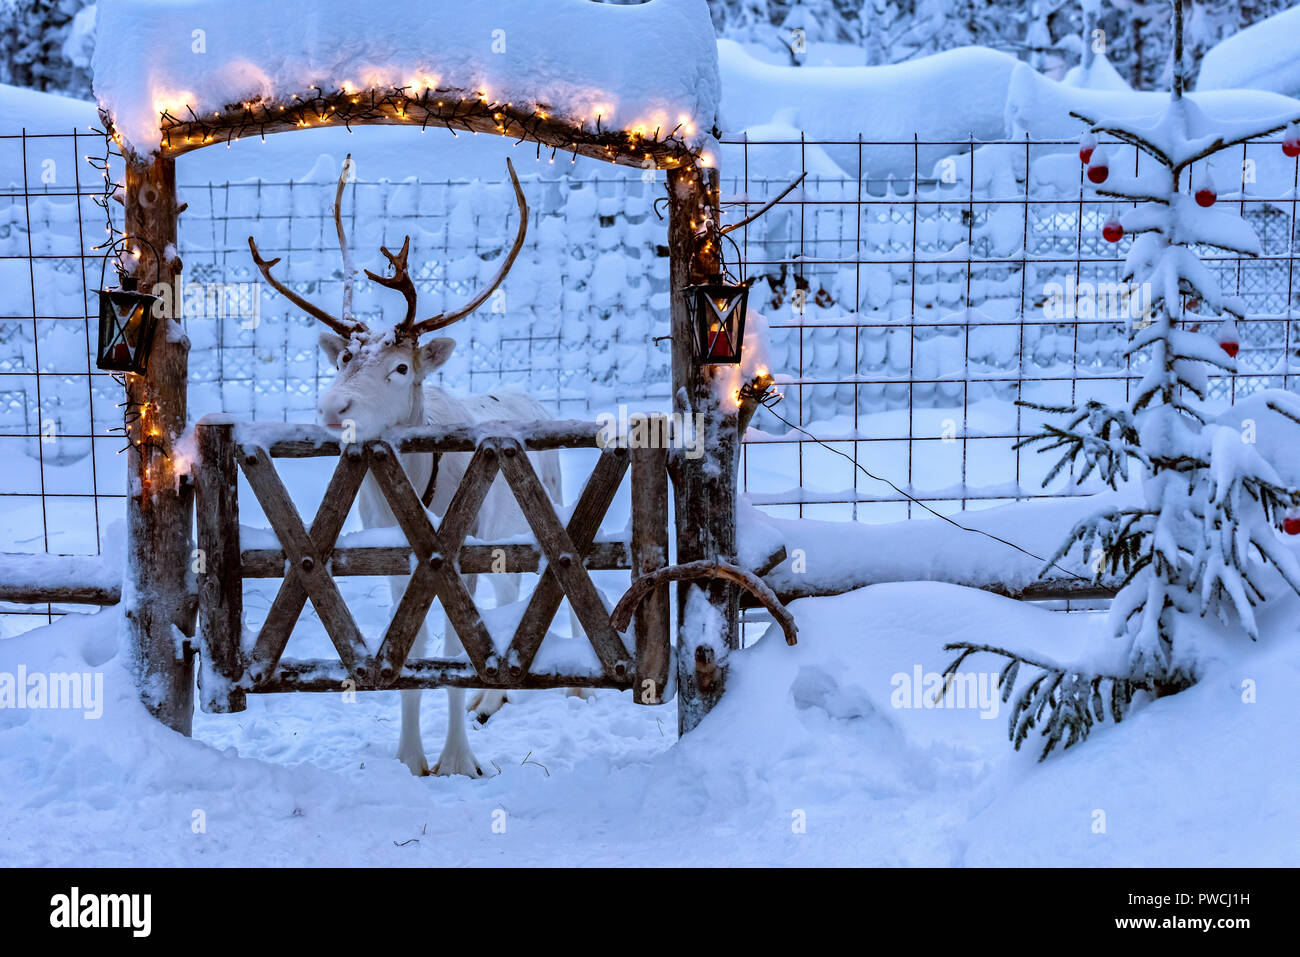 White reindeer with horns in deer enclosure in Lapland, Finland. Deep clean snow covers ground,  enclosure and fir tree near it. Wooden gate decorated - Stock Image